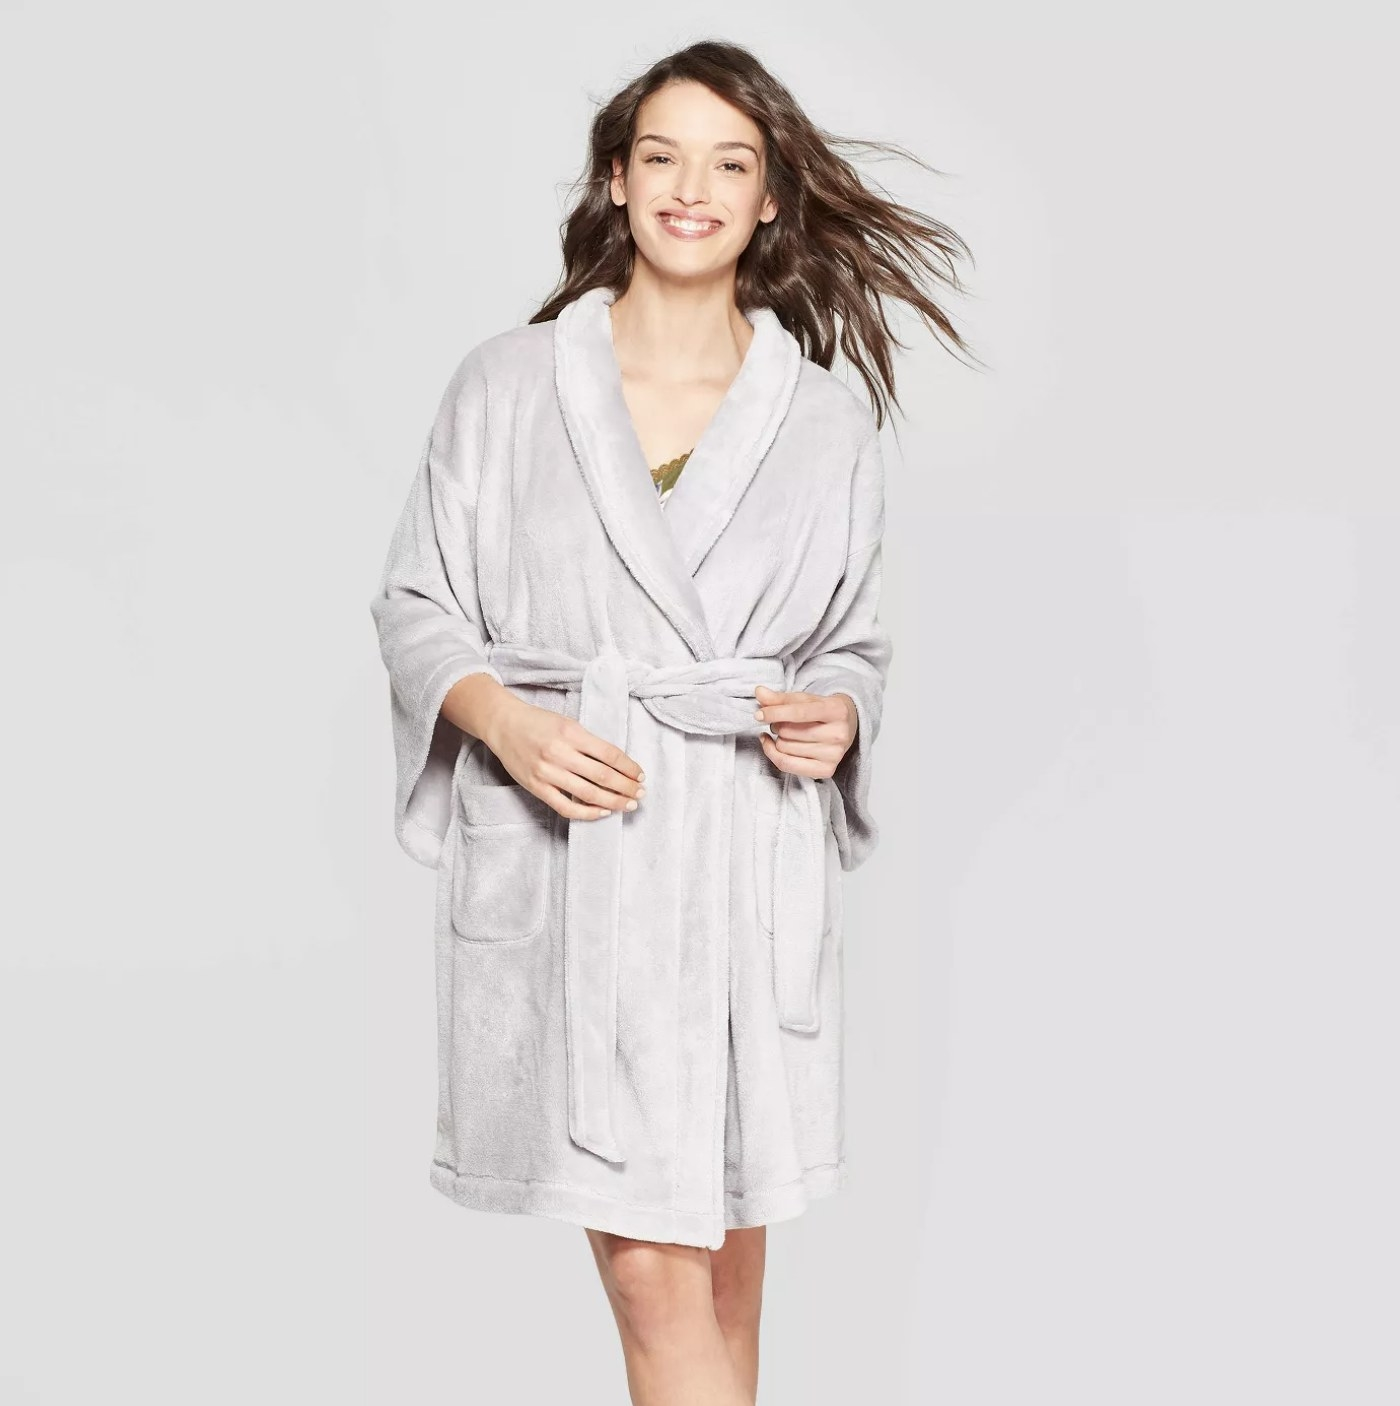 Model is wearing a light grey robe